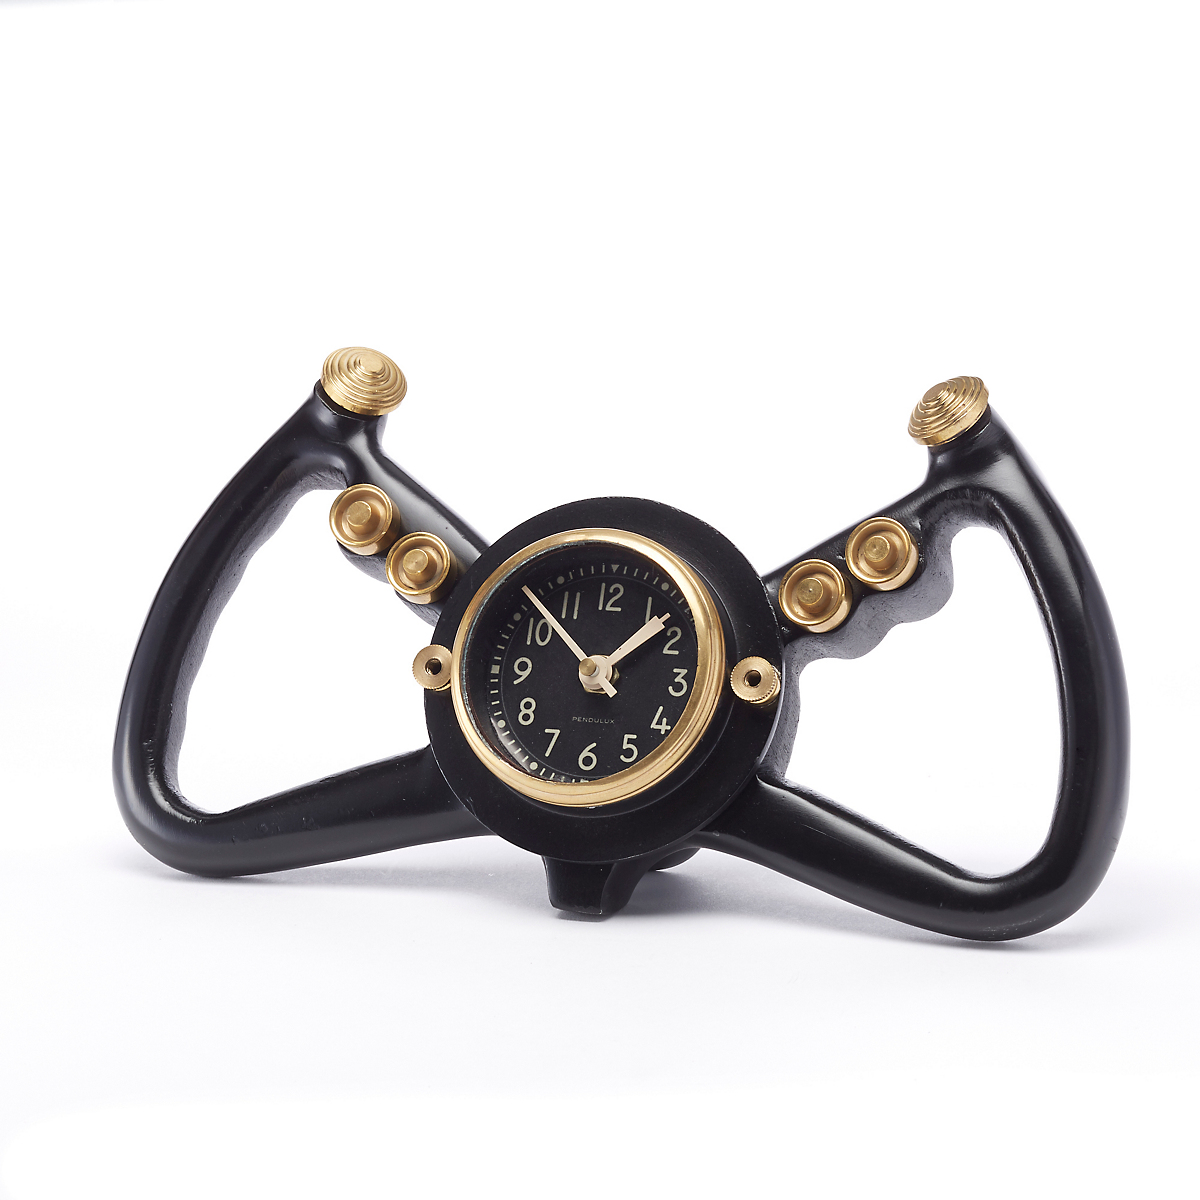 Pendulux Cockpit Table Clock